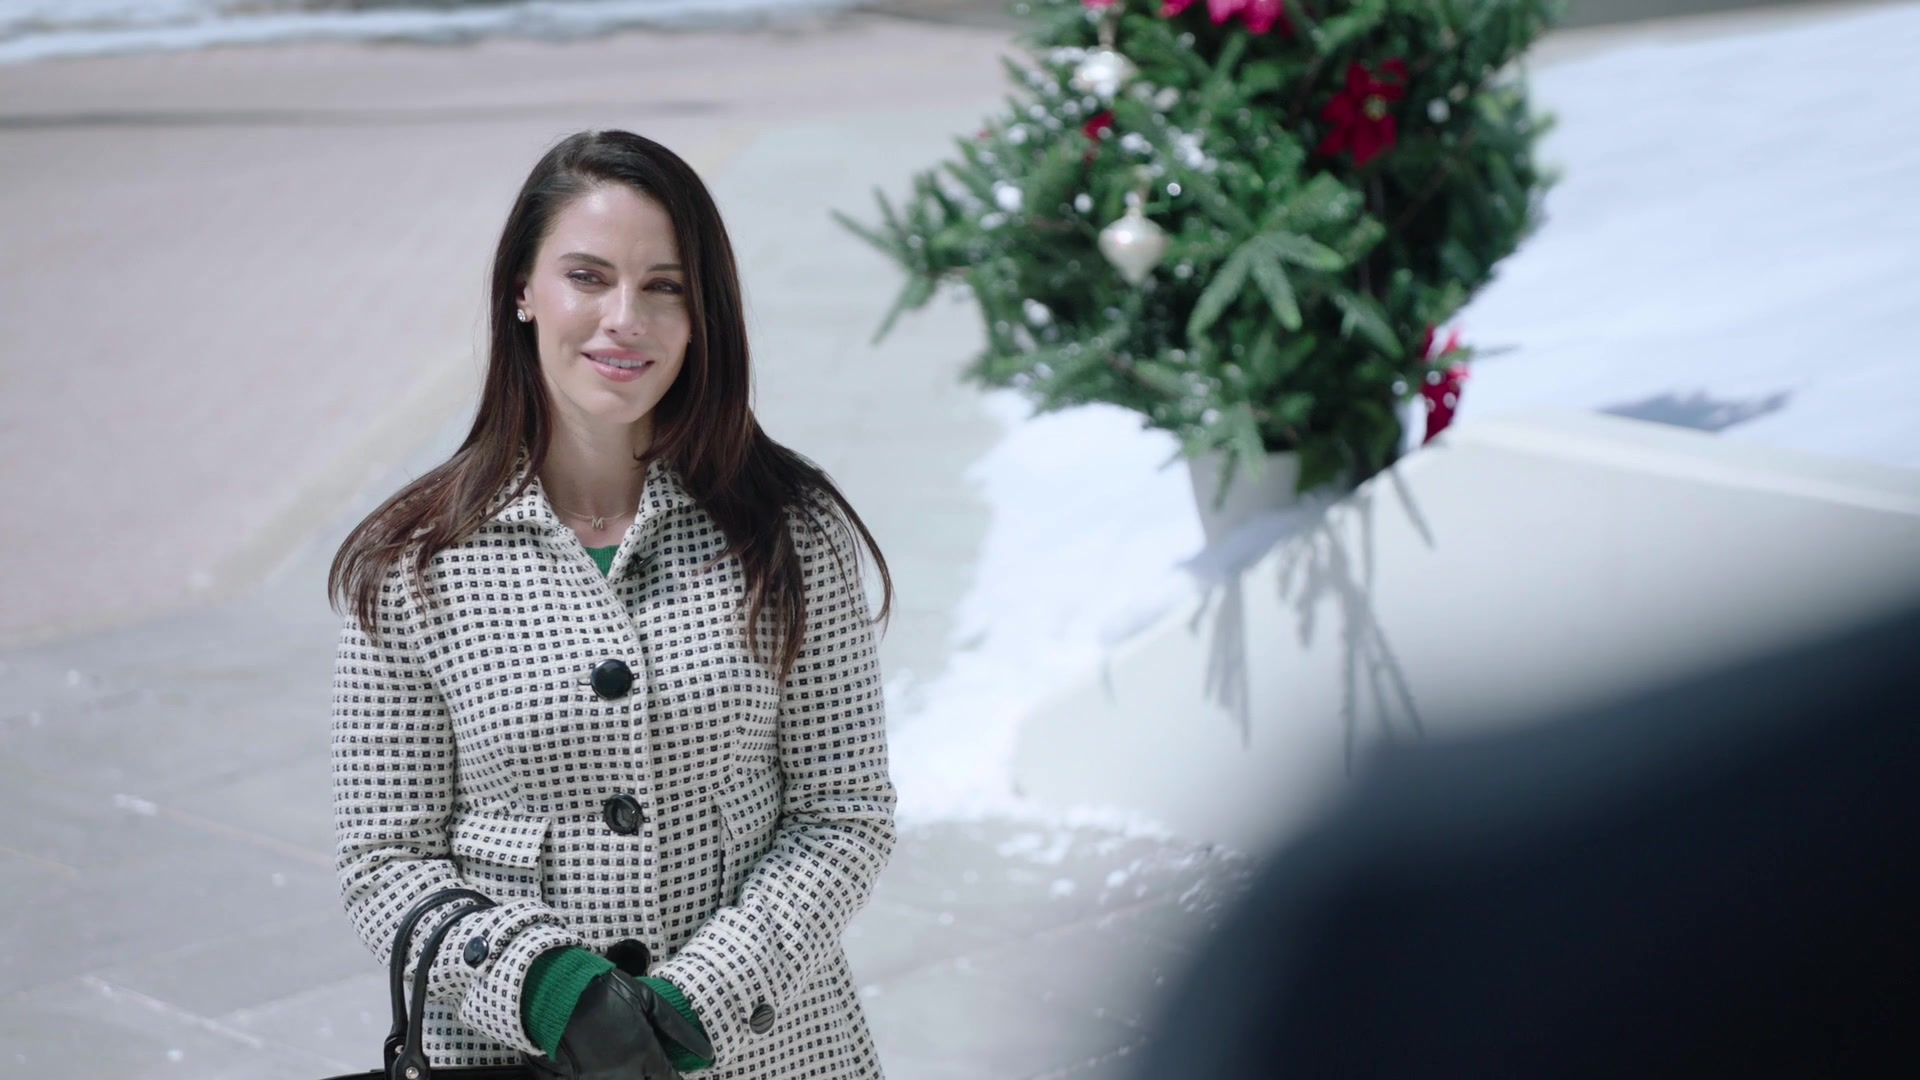 'Rediscovering Christmas' Screencaps